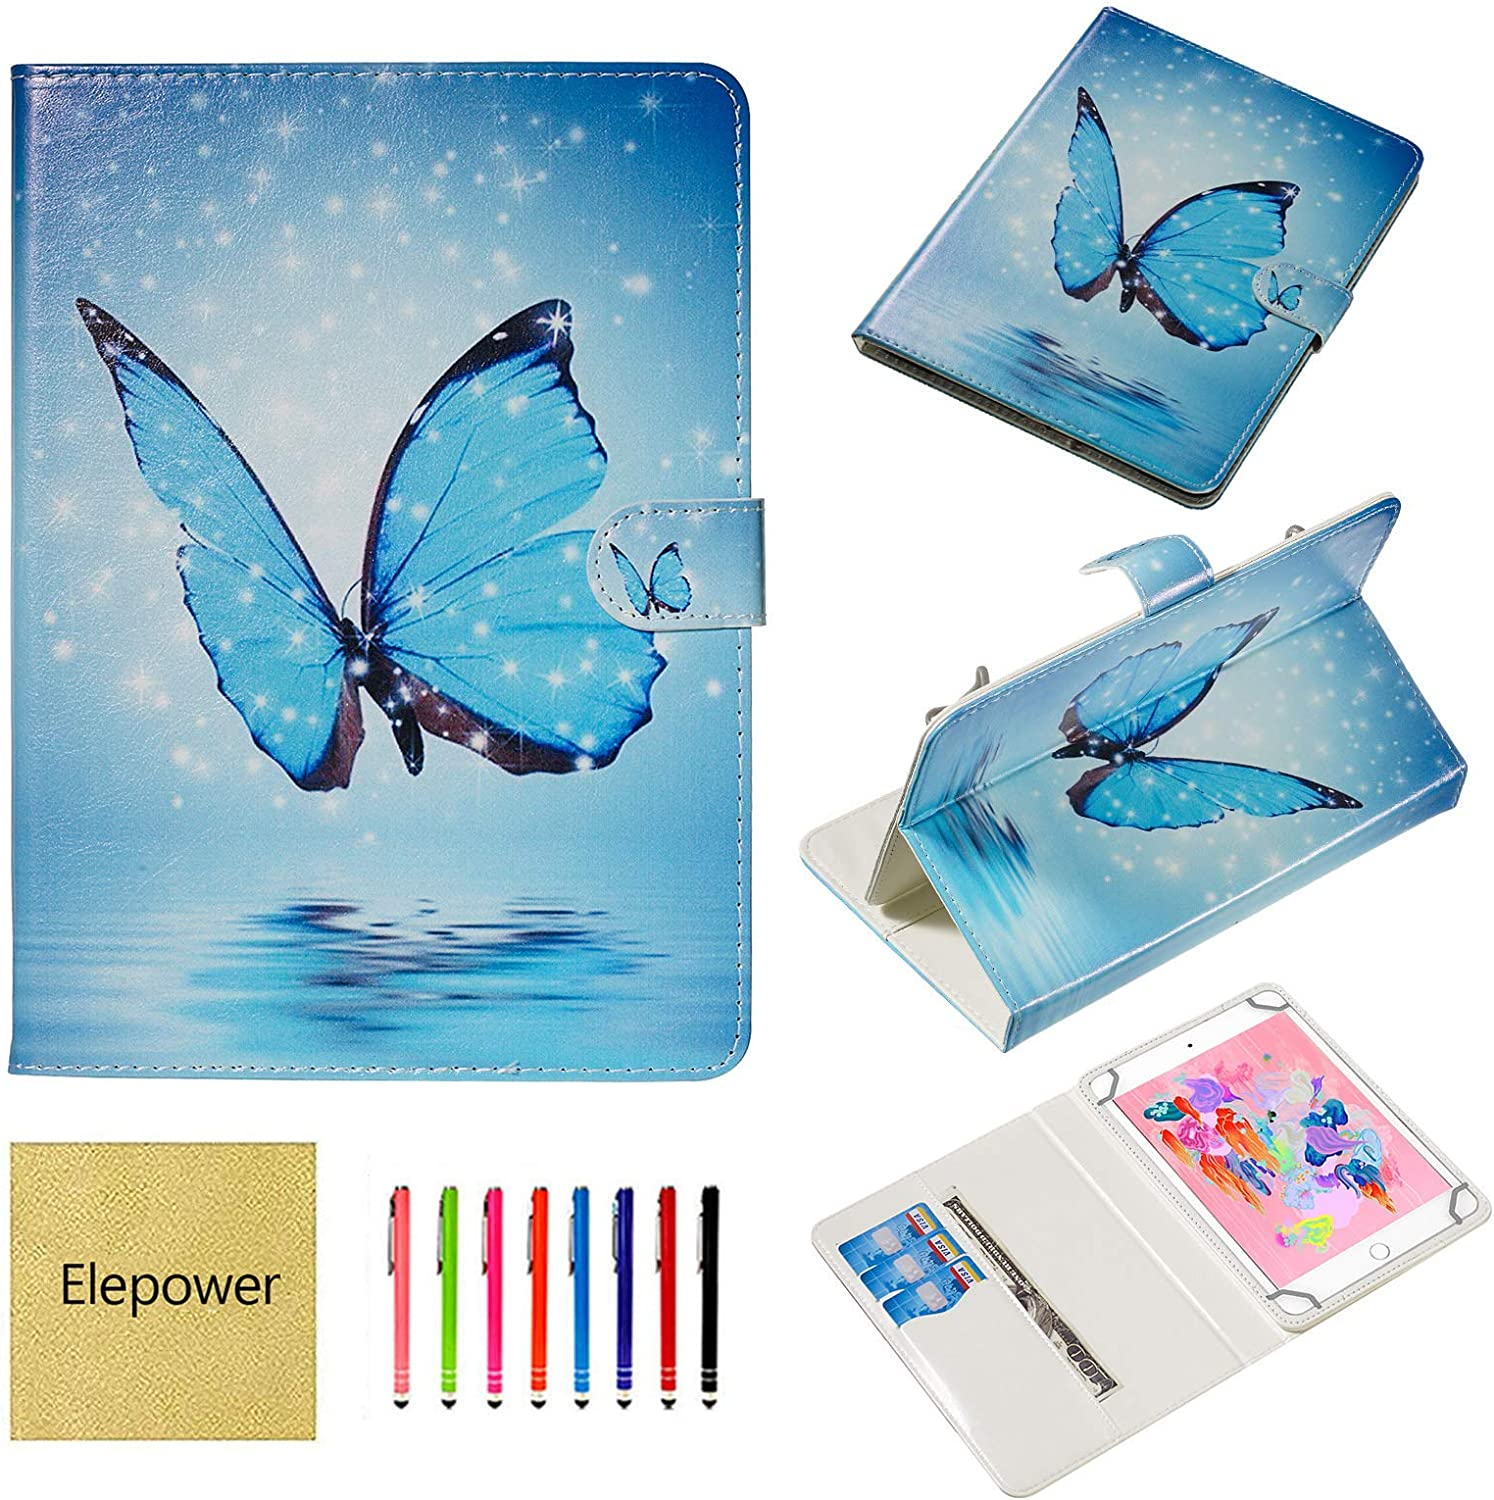 10 inch Tablet Universal Case, Elepower PU Leather Folio Stand Pattern Protective Cover for All 9.5-10.5 inch, iPad/Galaxy Tab/Fire HD/Huawei/Lenovo 9.6'' 9.7'' 10.1'' 10.2'' 10.5'', Butterfly